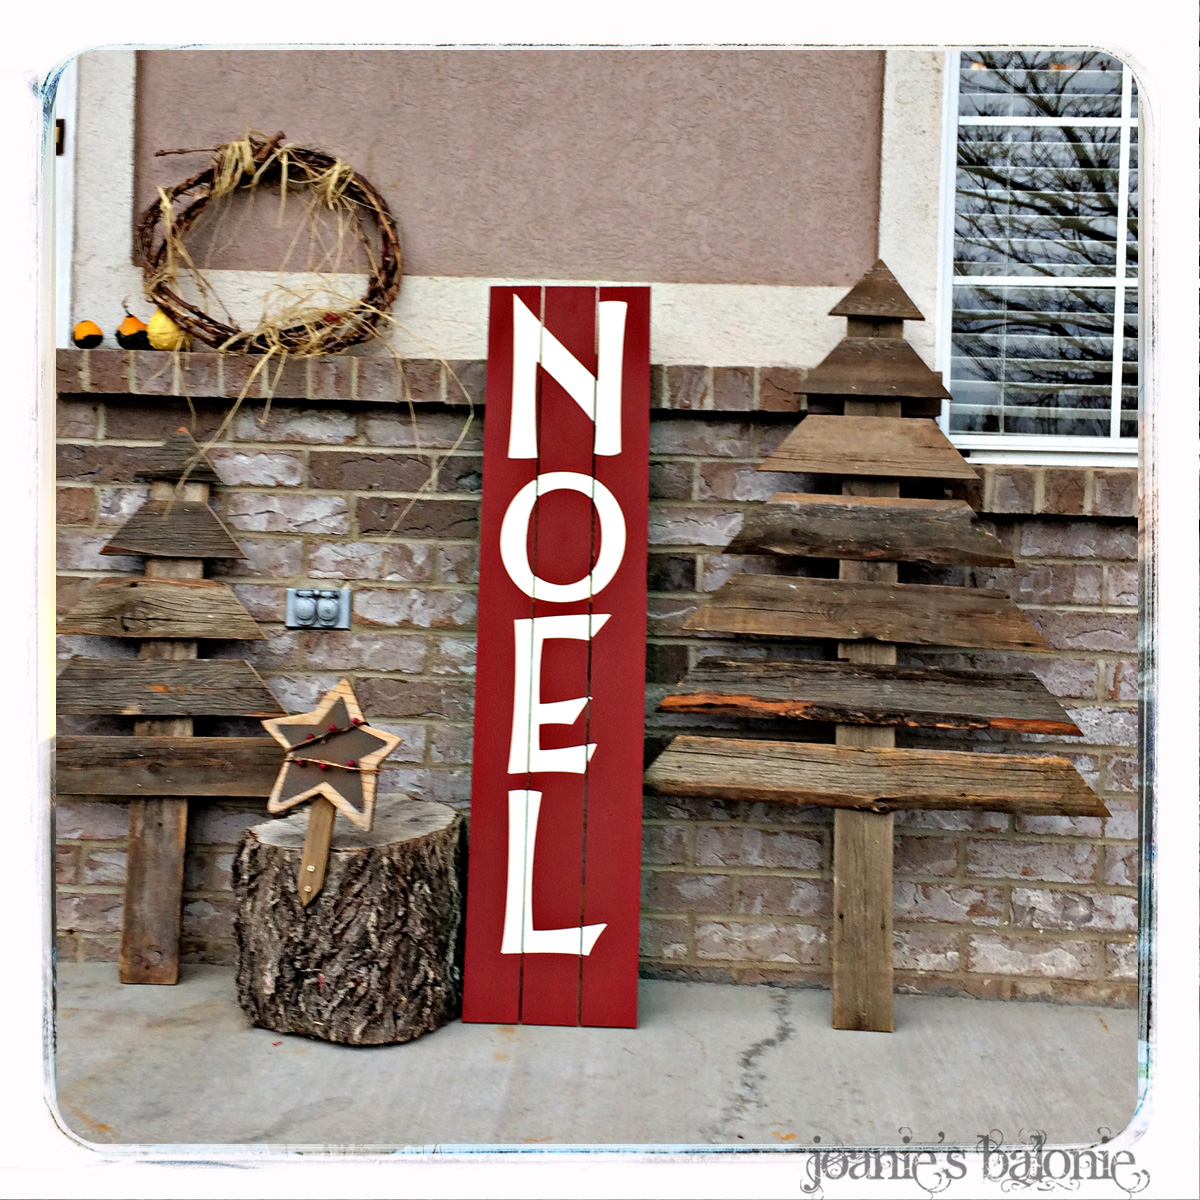 Joanie 39 s balonie noel sign and barnwood christmas trees for Barnwood decor